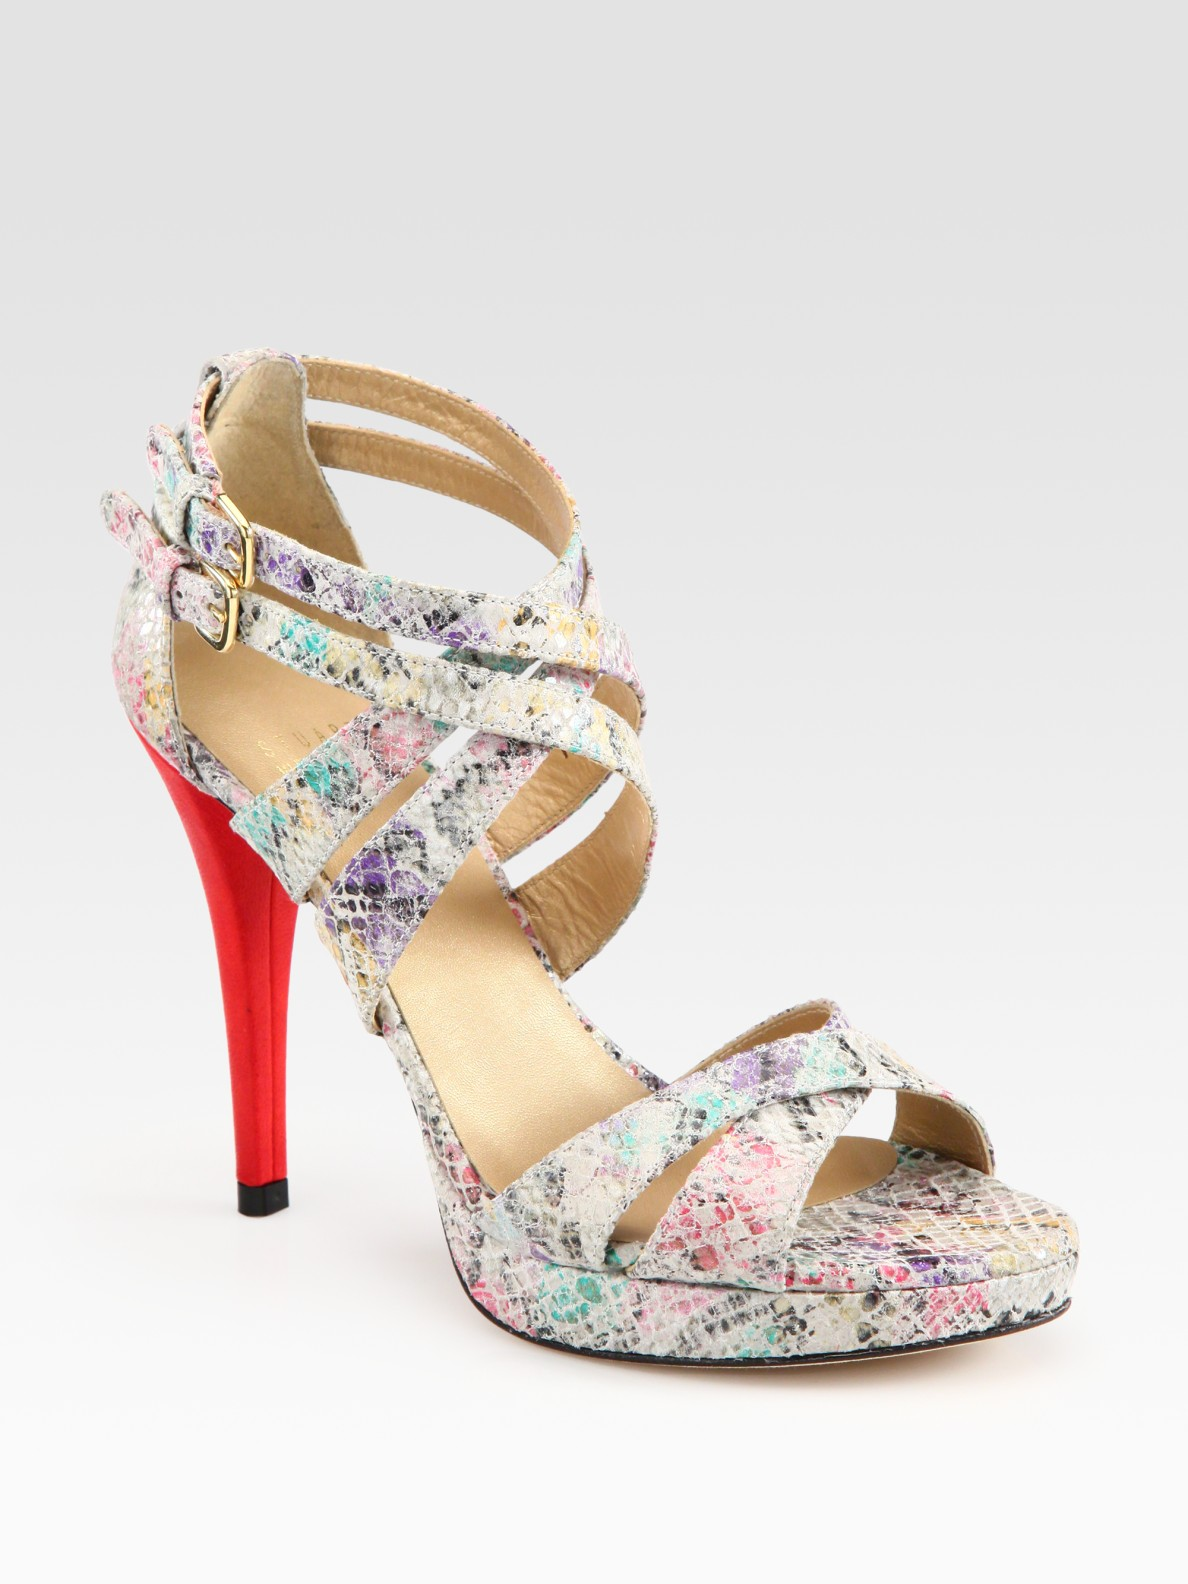 e1567c08be62 Lyst - Stuart Weitzman Multicolored Python-print Leather Platform ...